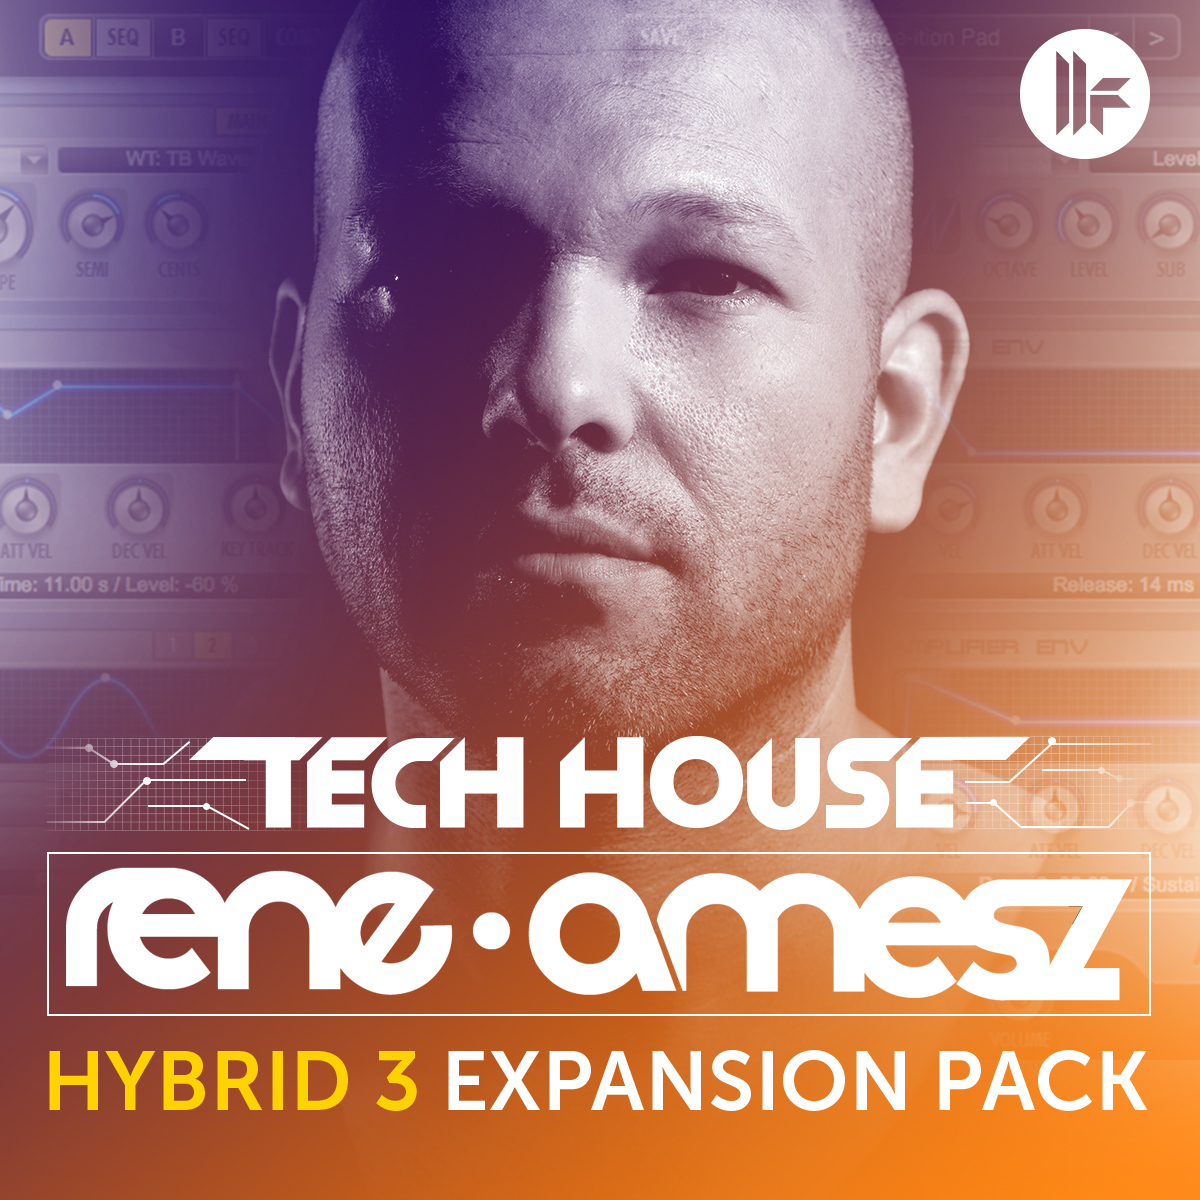 Rene Amesz Expansion for Hybrid 3